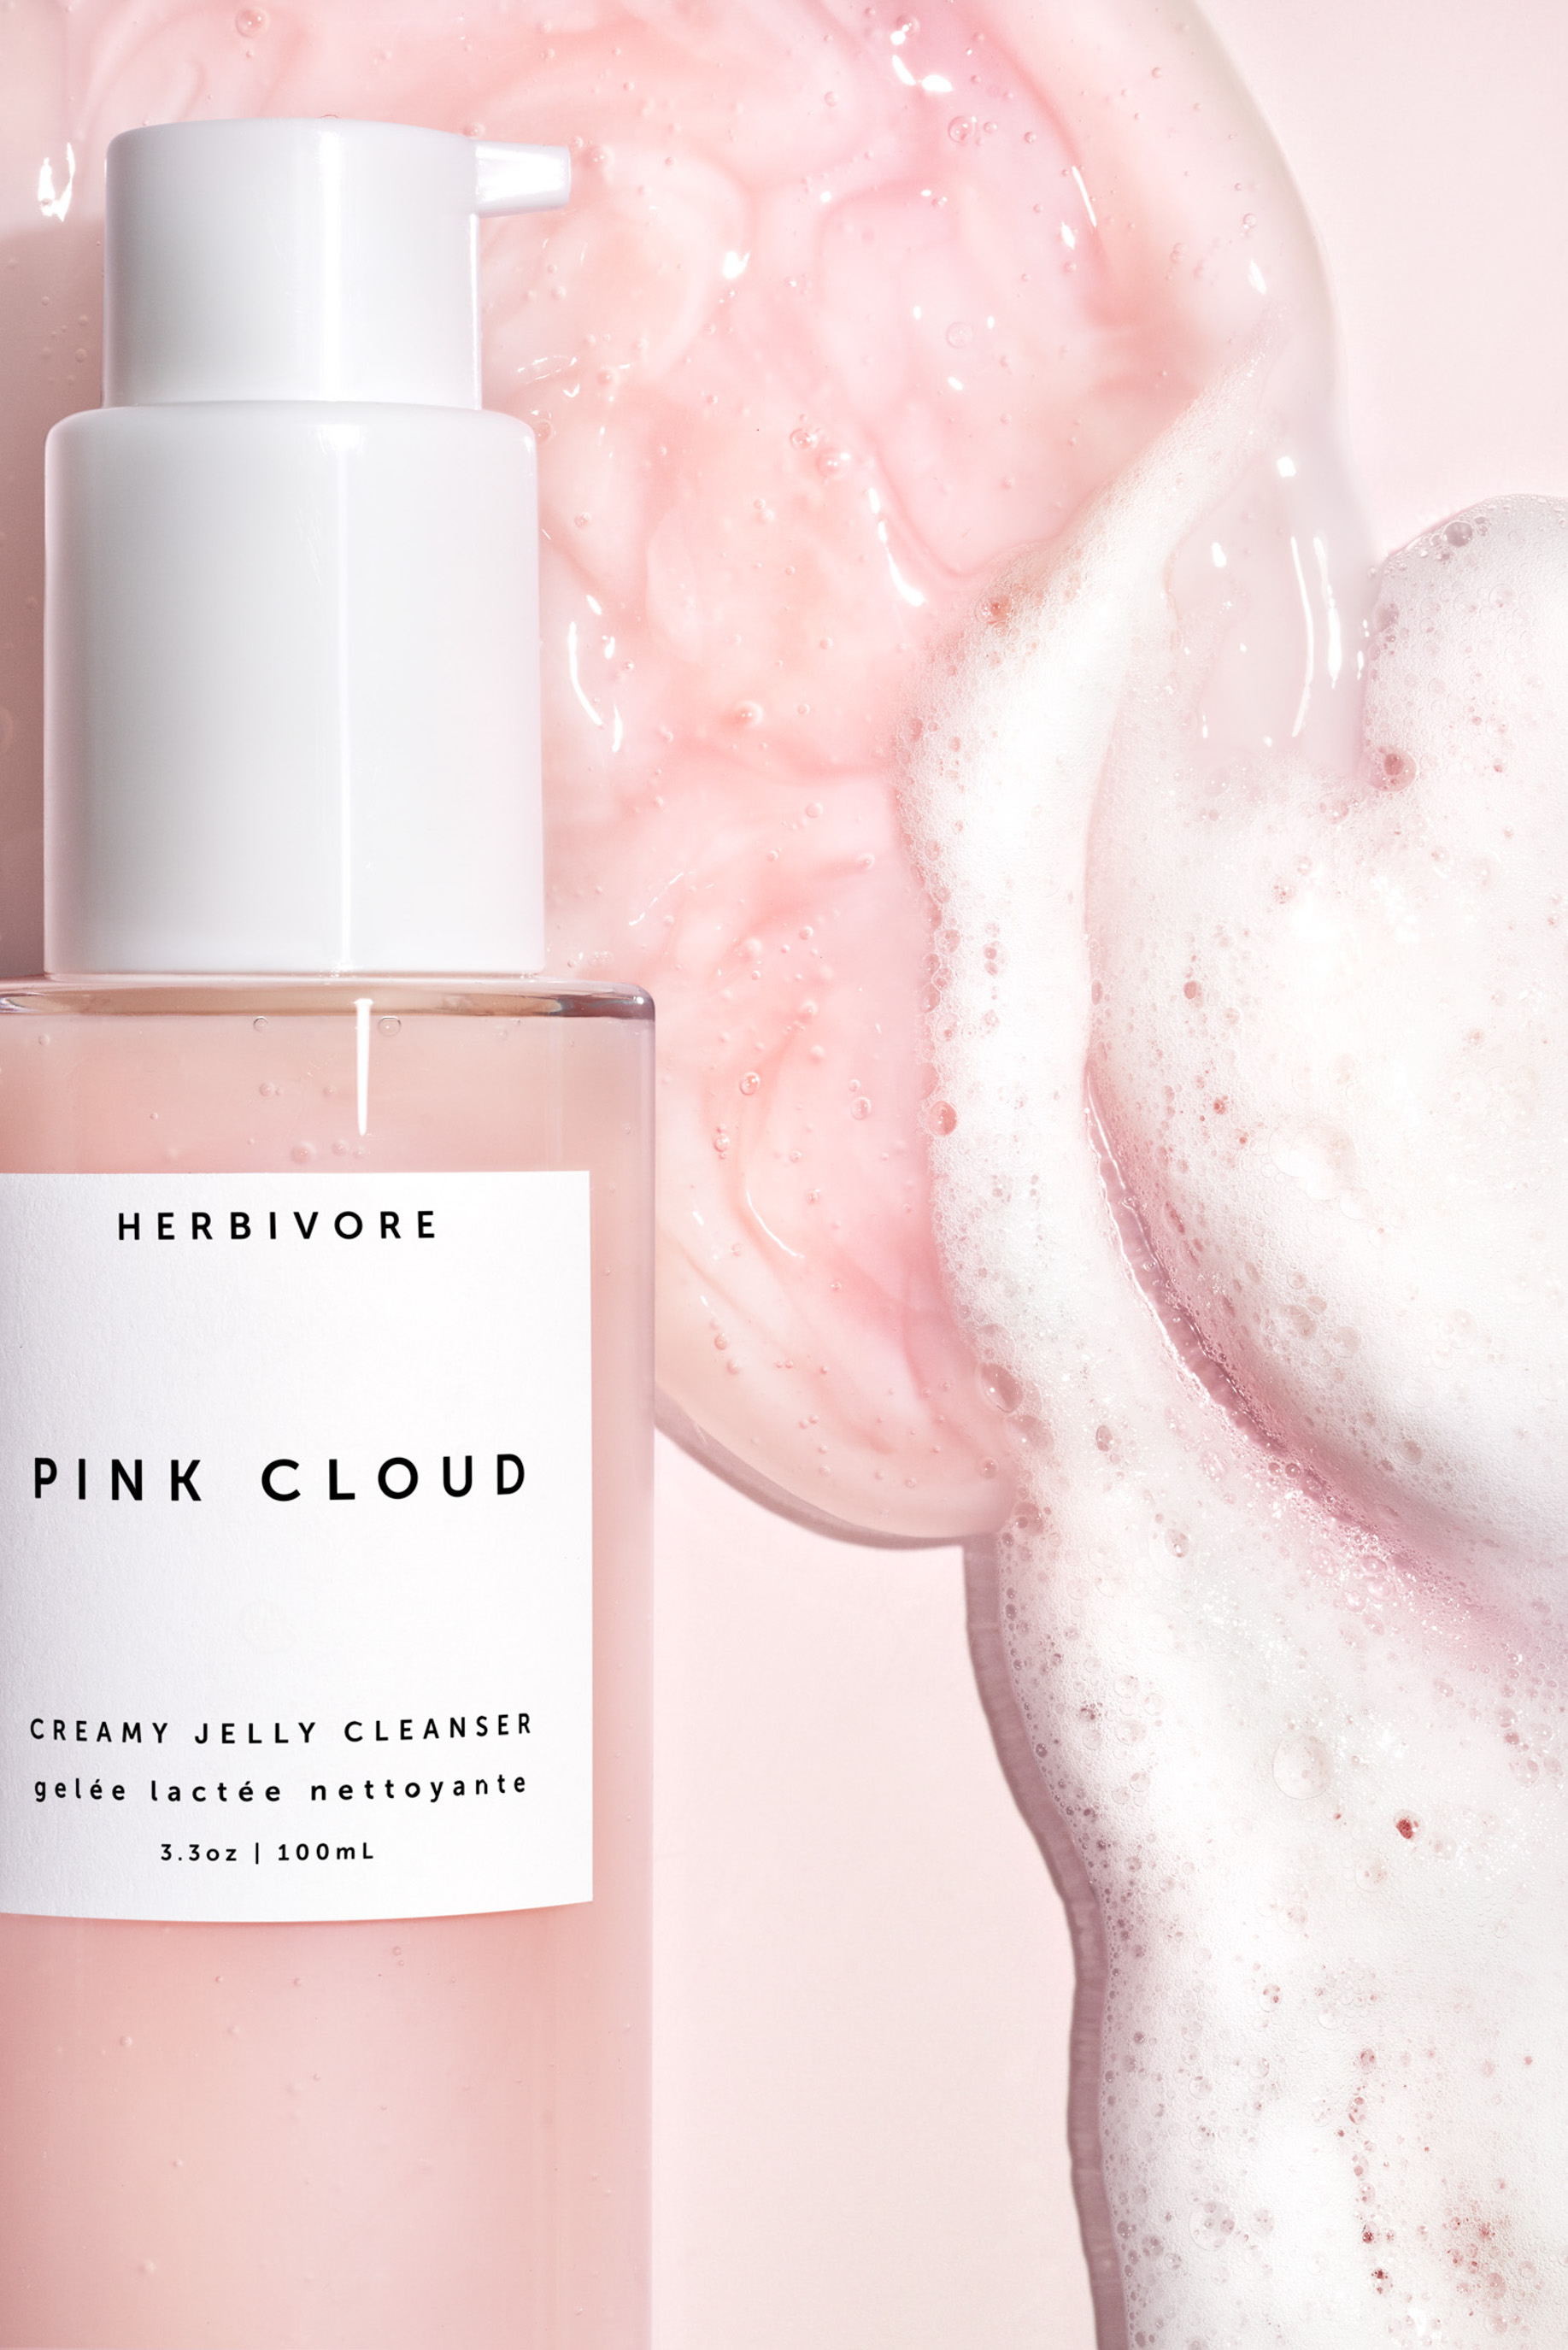 STAN_HERBIVORE_PINK_CLOUD_CLEANSER_WITH_TEXTURE_FOAM_02.JPG